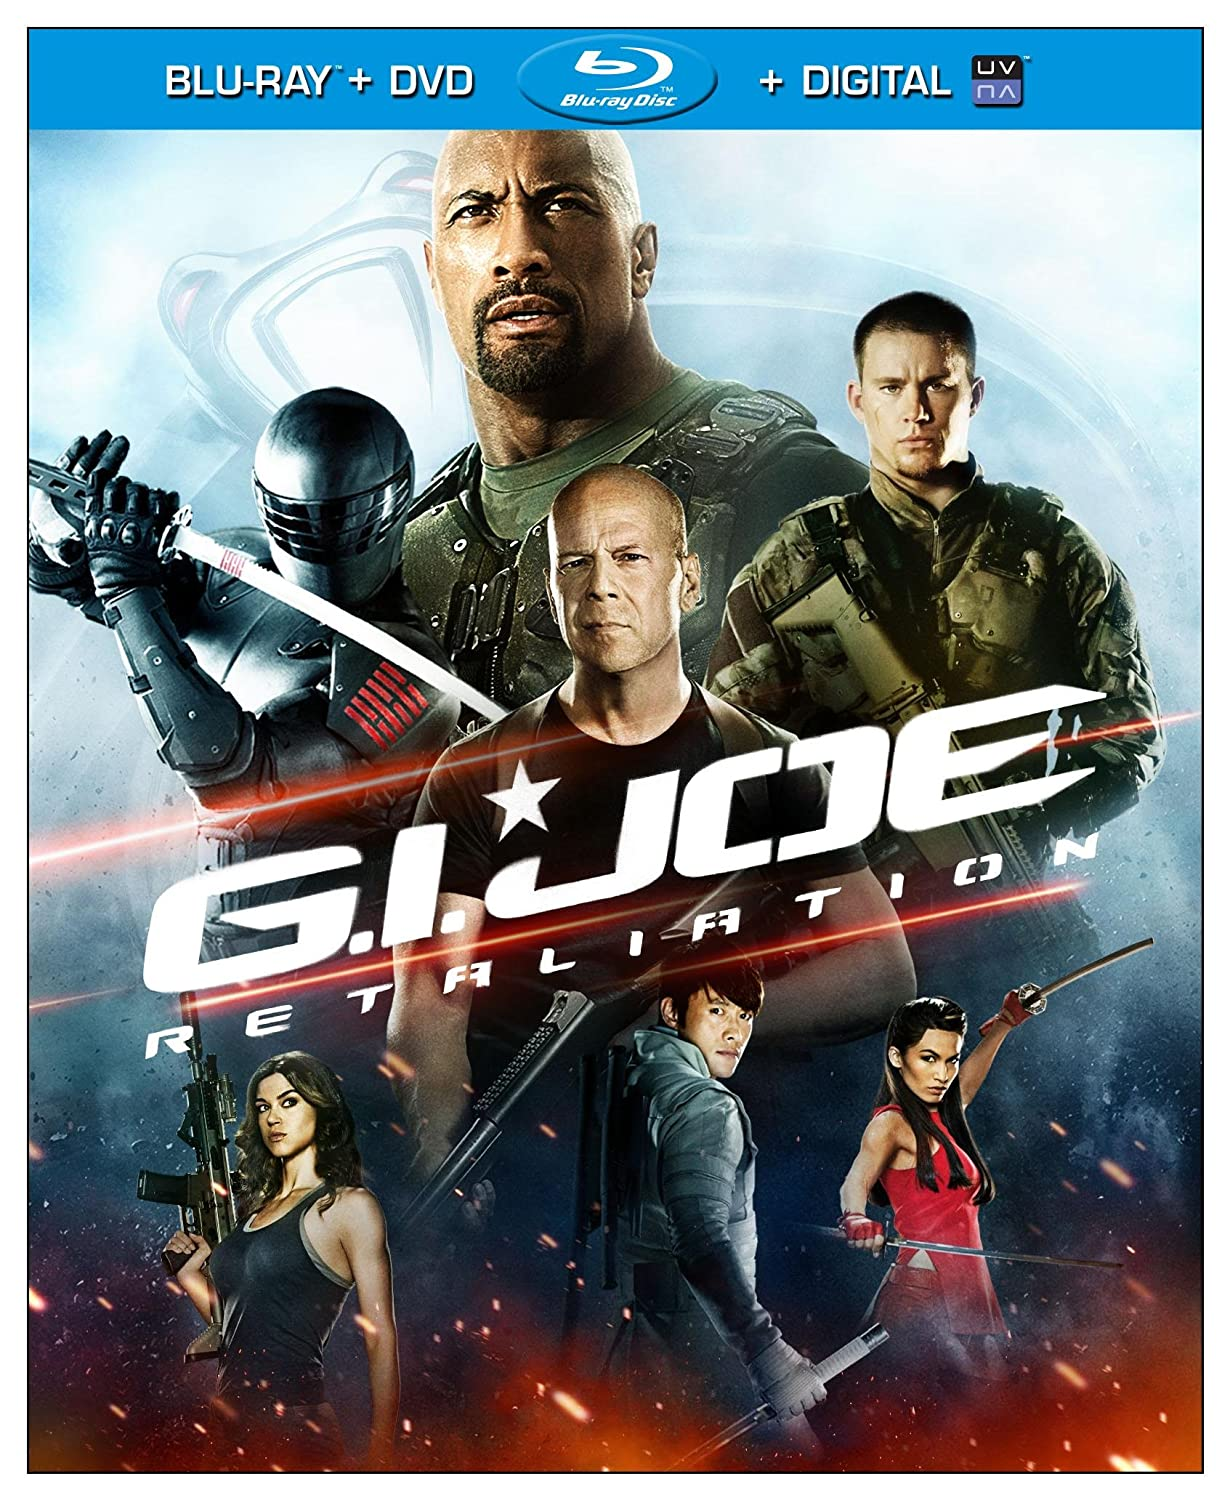 G.I. Joe Retaliation (2013) Extended Dual Audio Hindi 400MB BluRay 480p ESubs